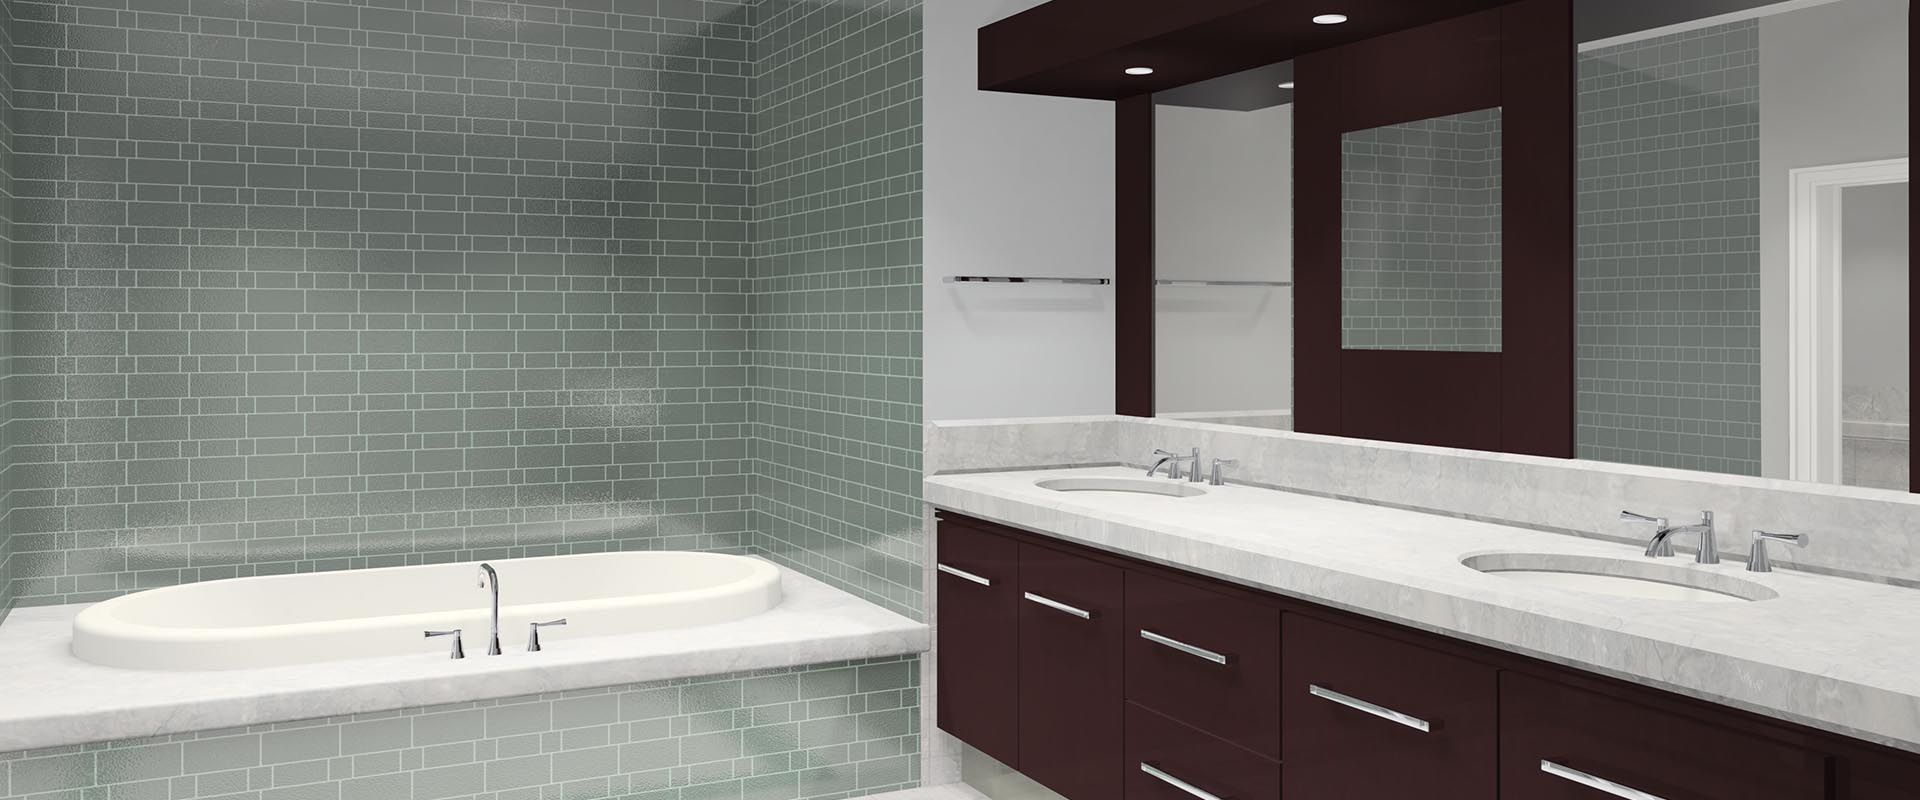 Professional bathroom renovations and cost in canberra act for Professional bathroom renovations